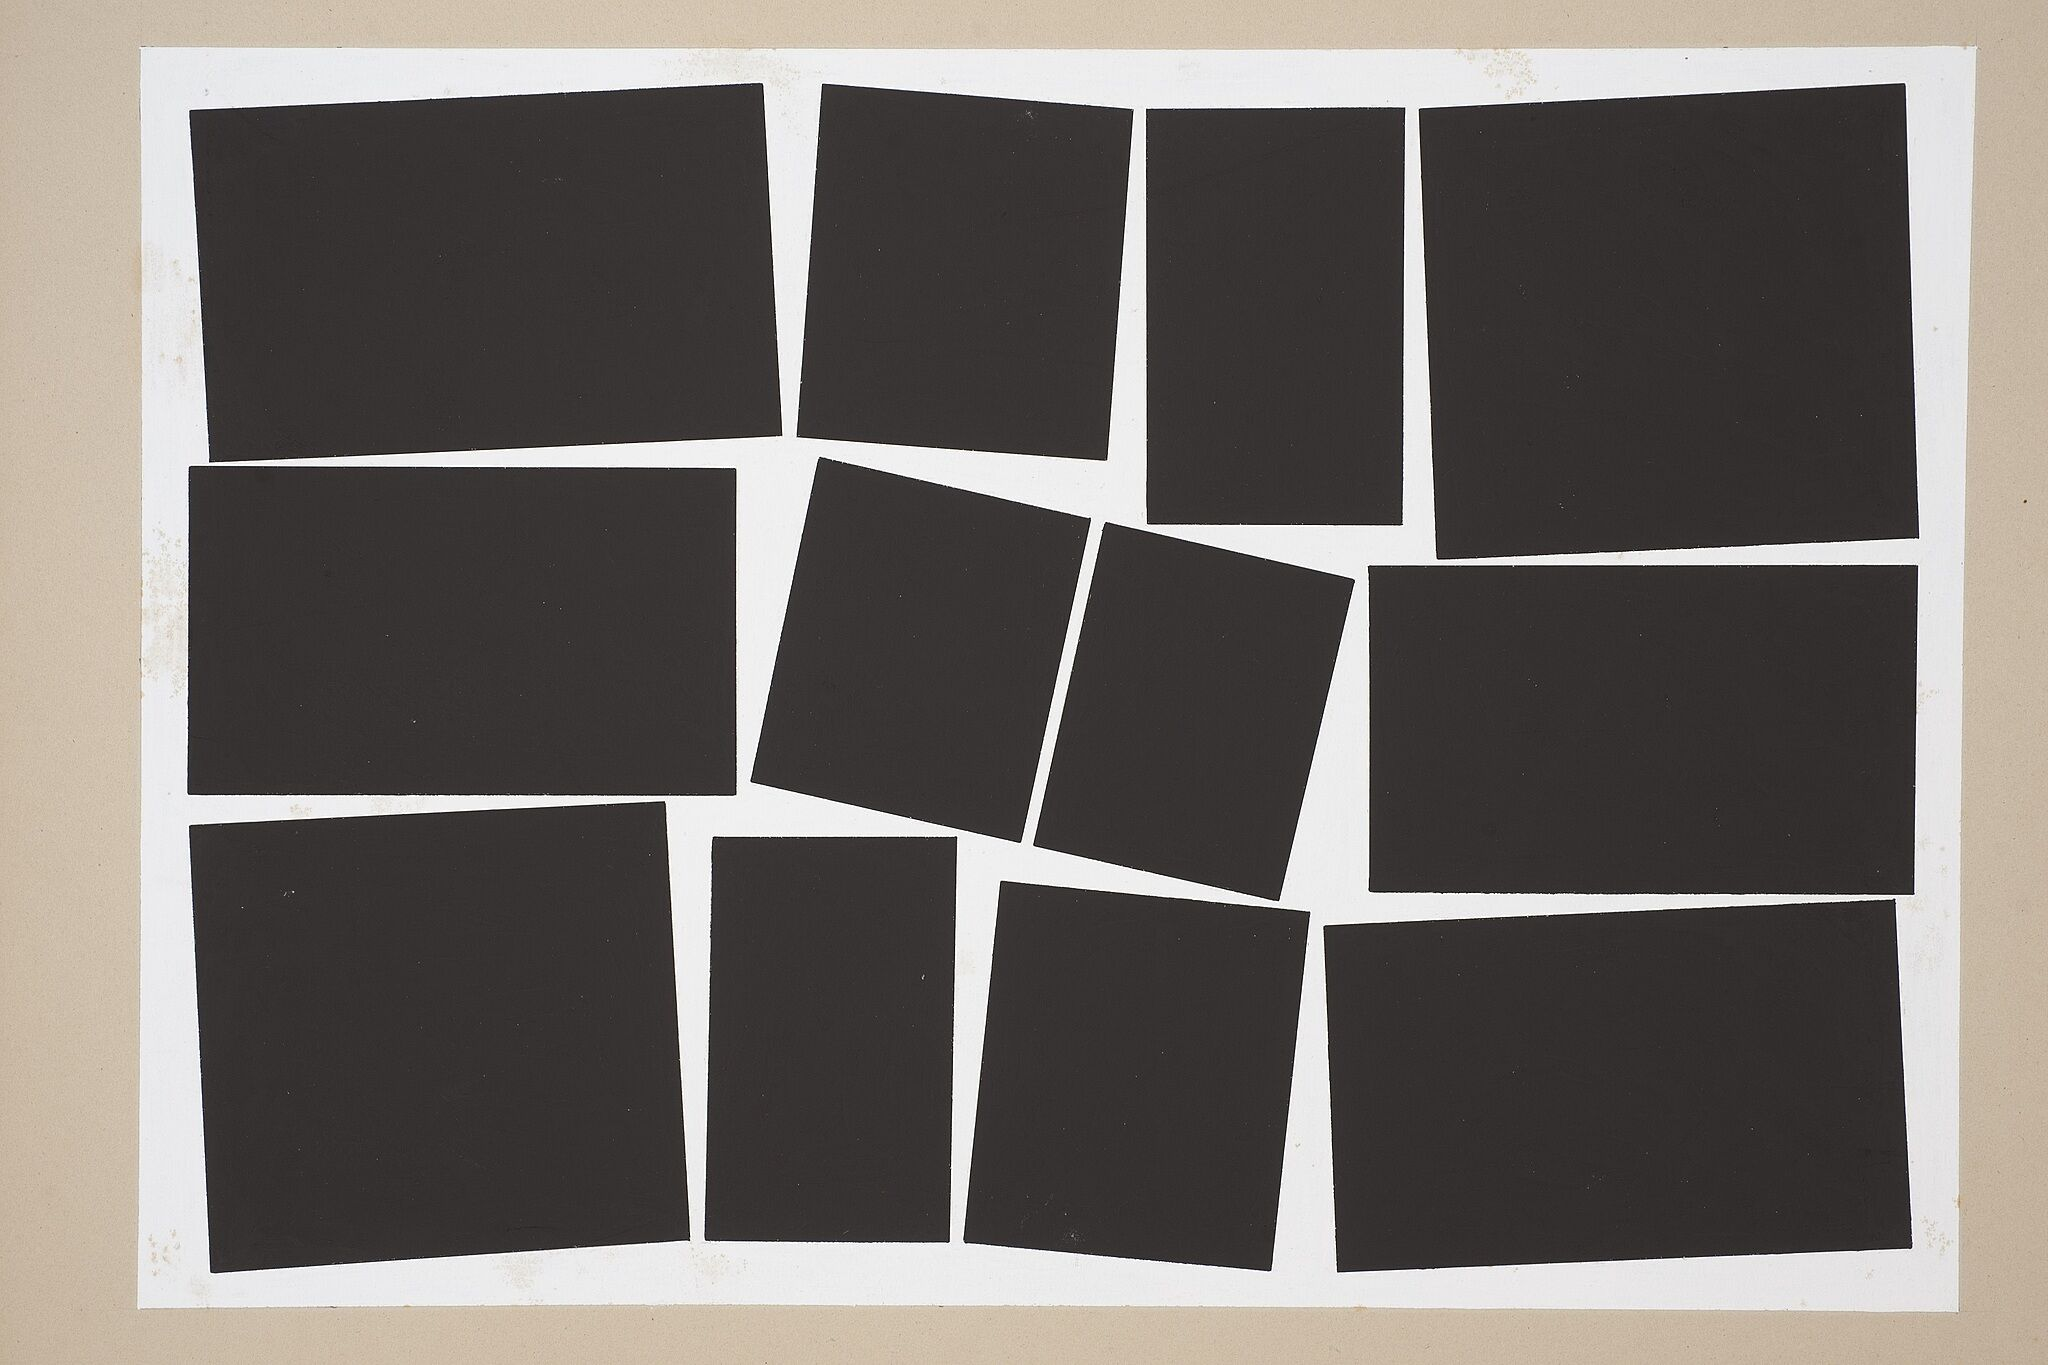 Black squares arranged in a grid on cardboard.